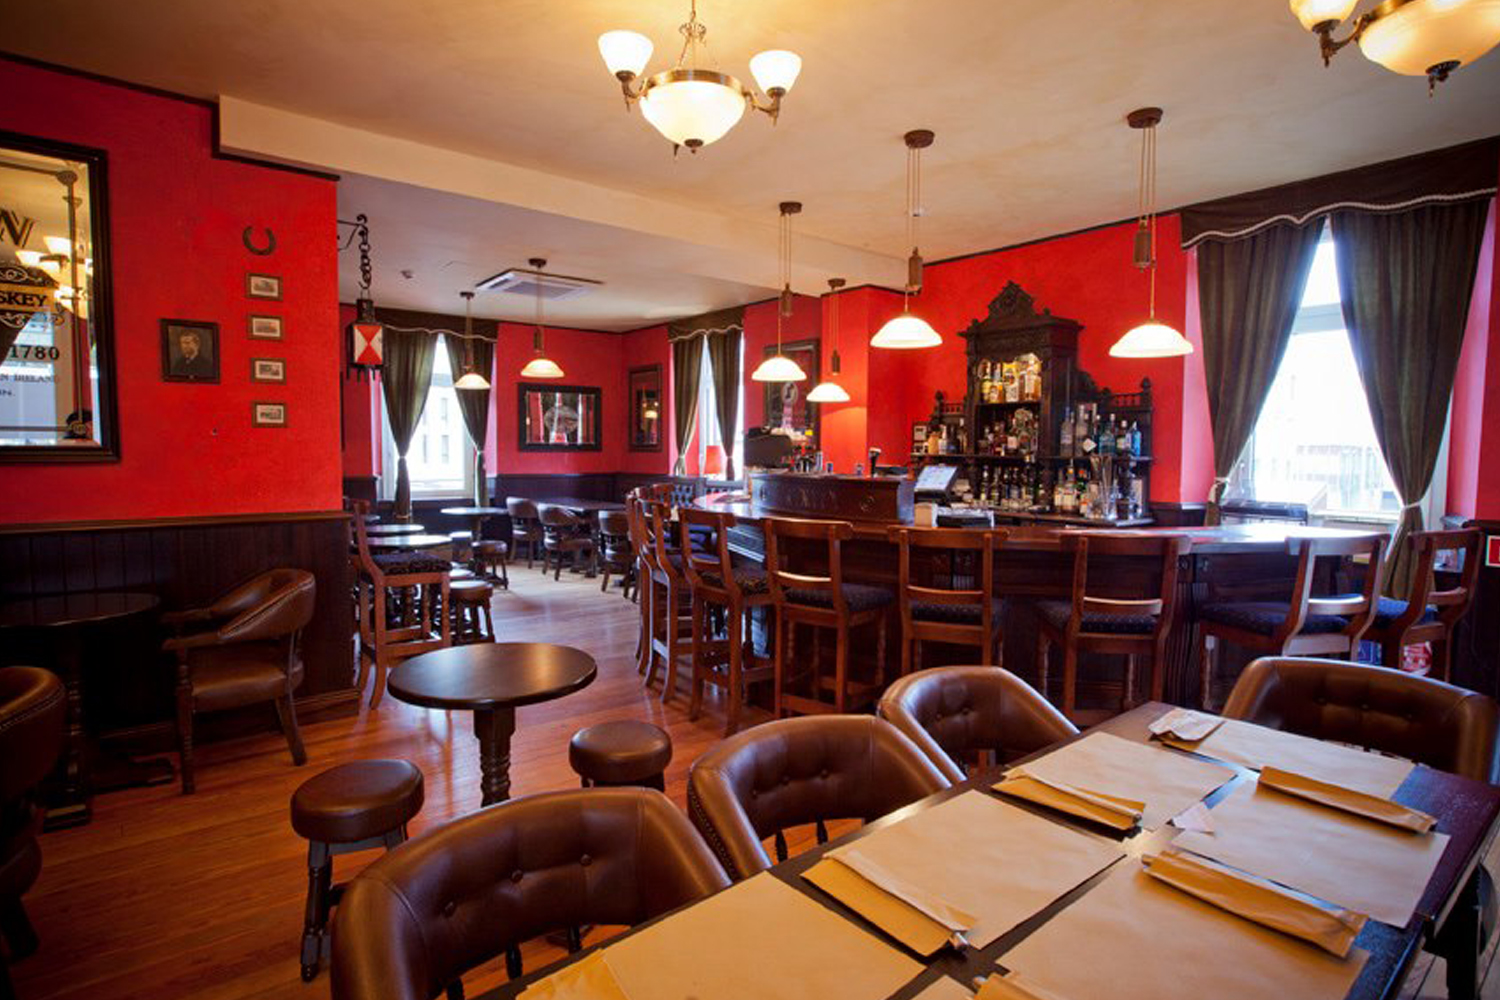 The Trinity Irish Pub design - interior design seating area with red walls and wooden furniture.